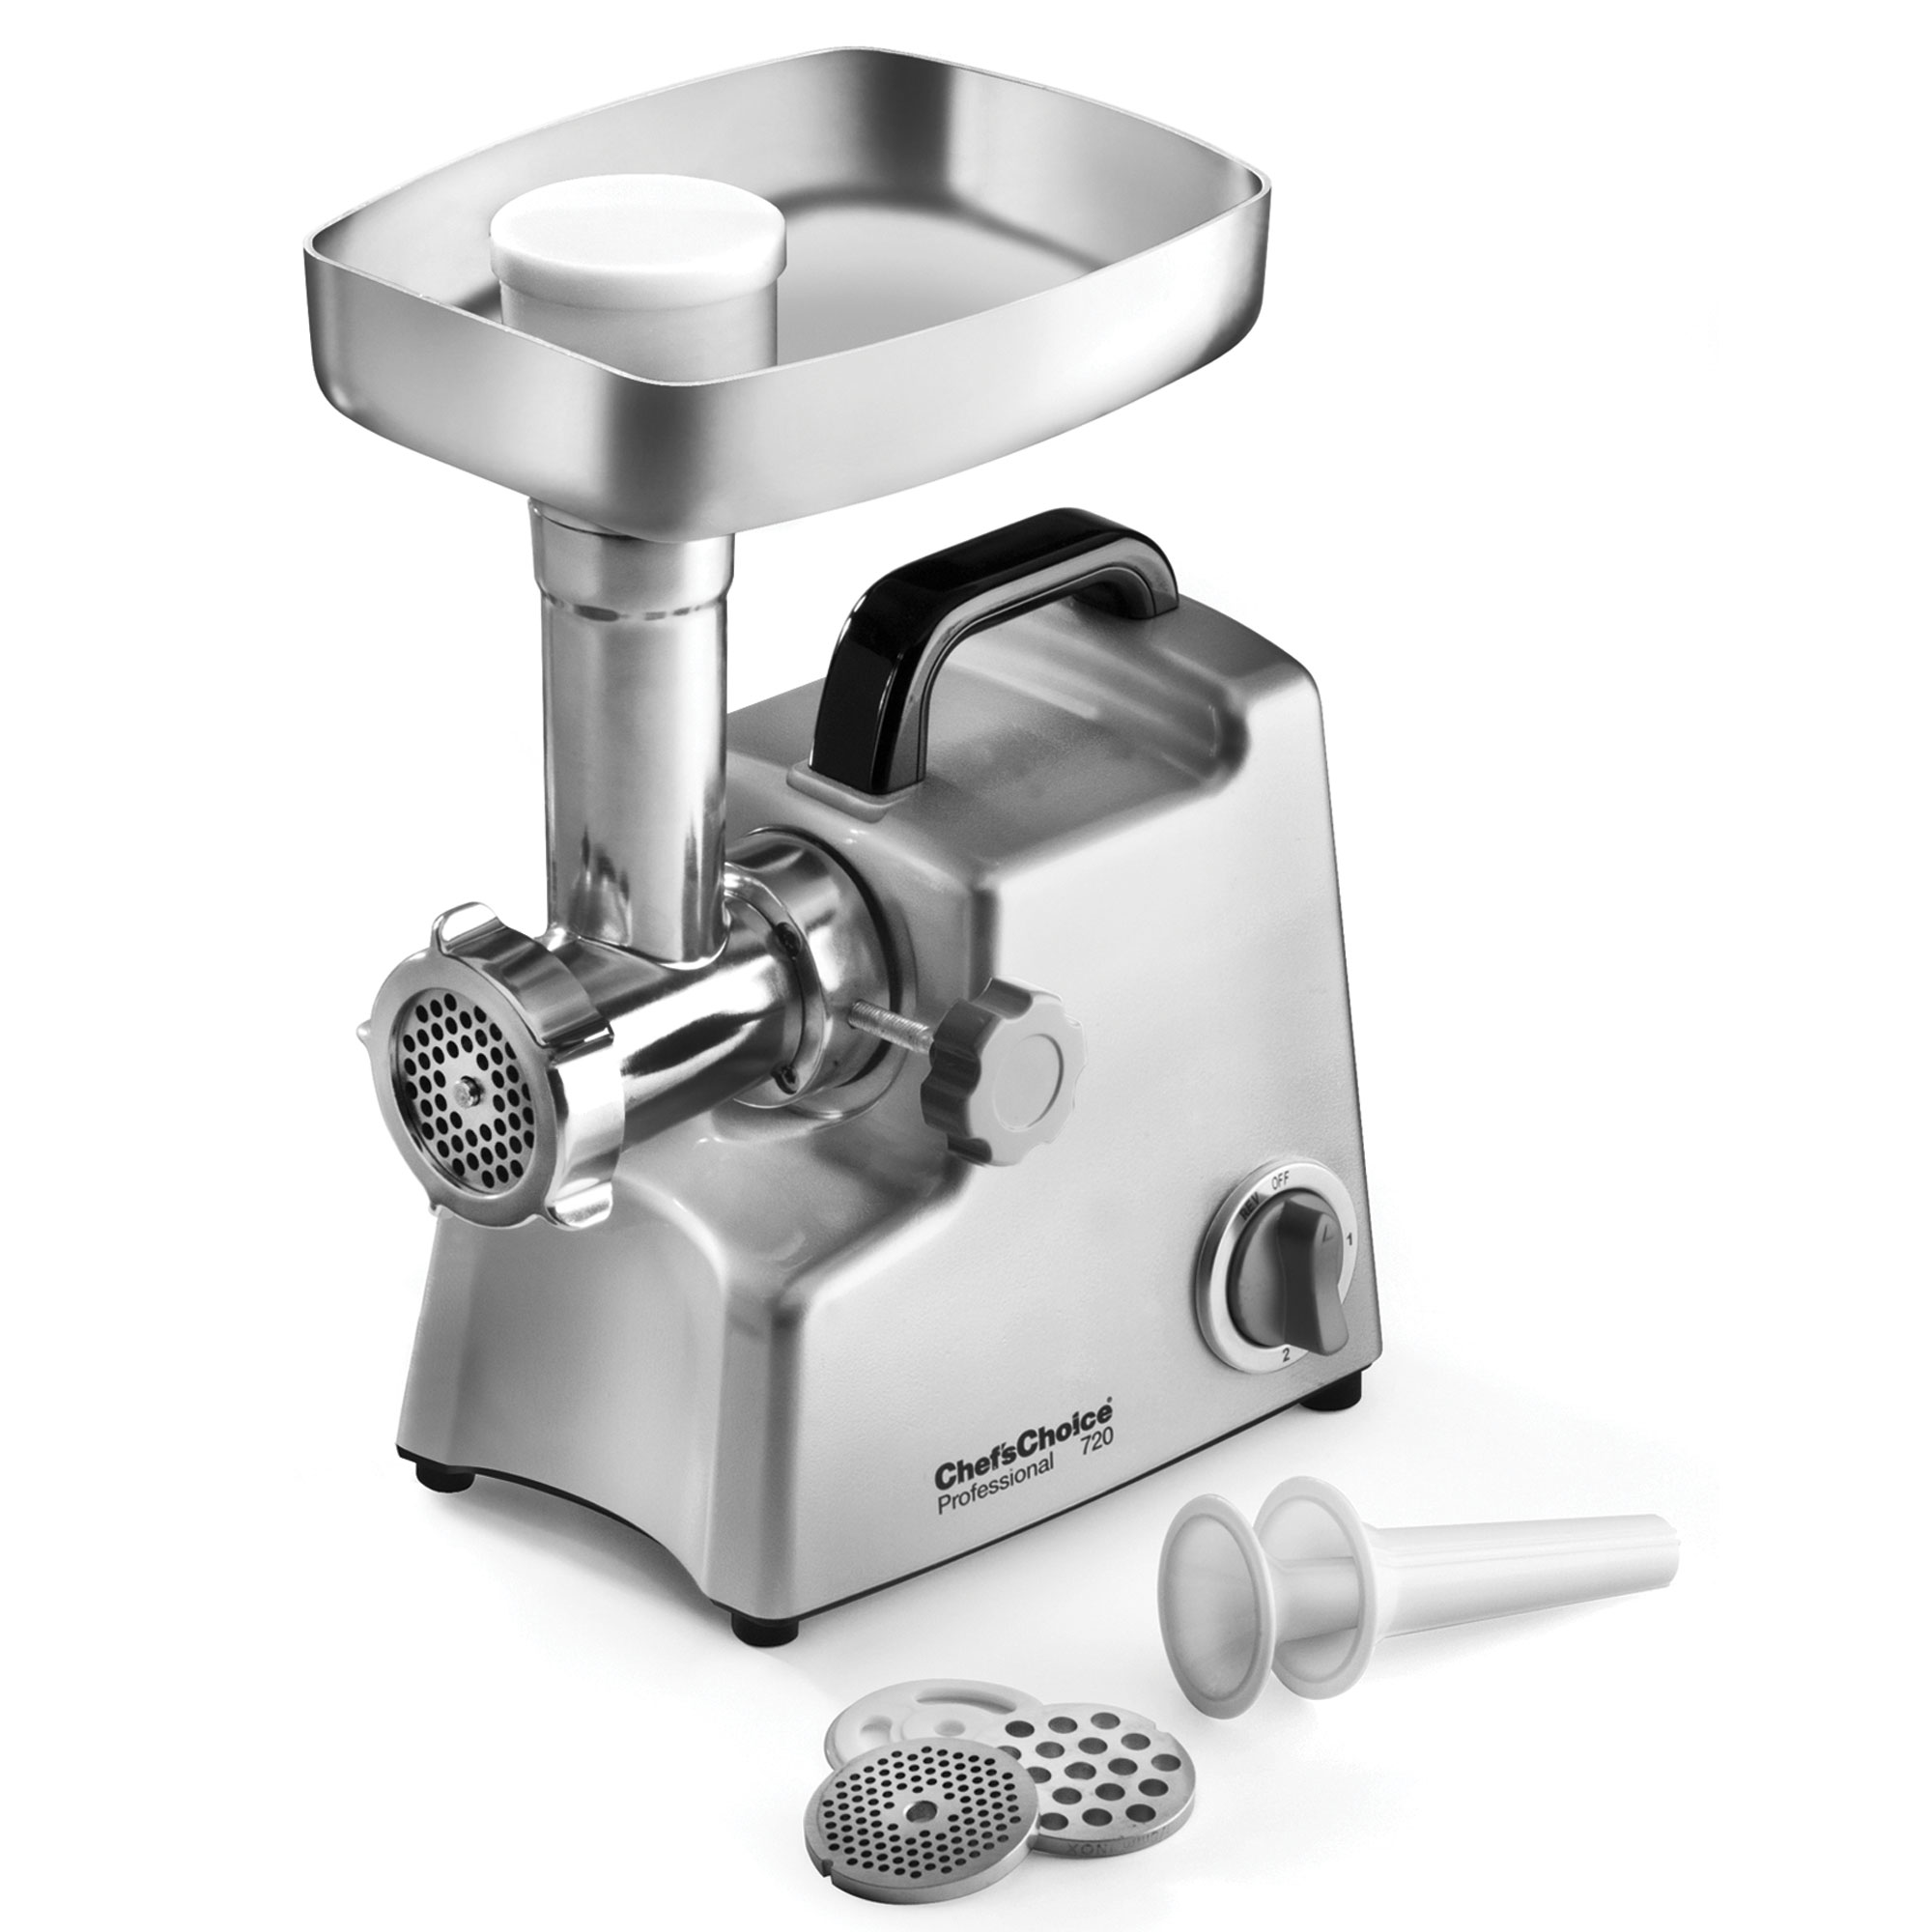 Small Electric Meat Grinder ~ Chef s choice model professional electric meat grinder